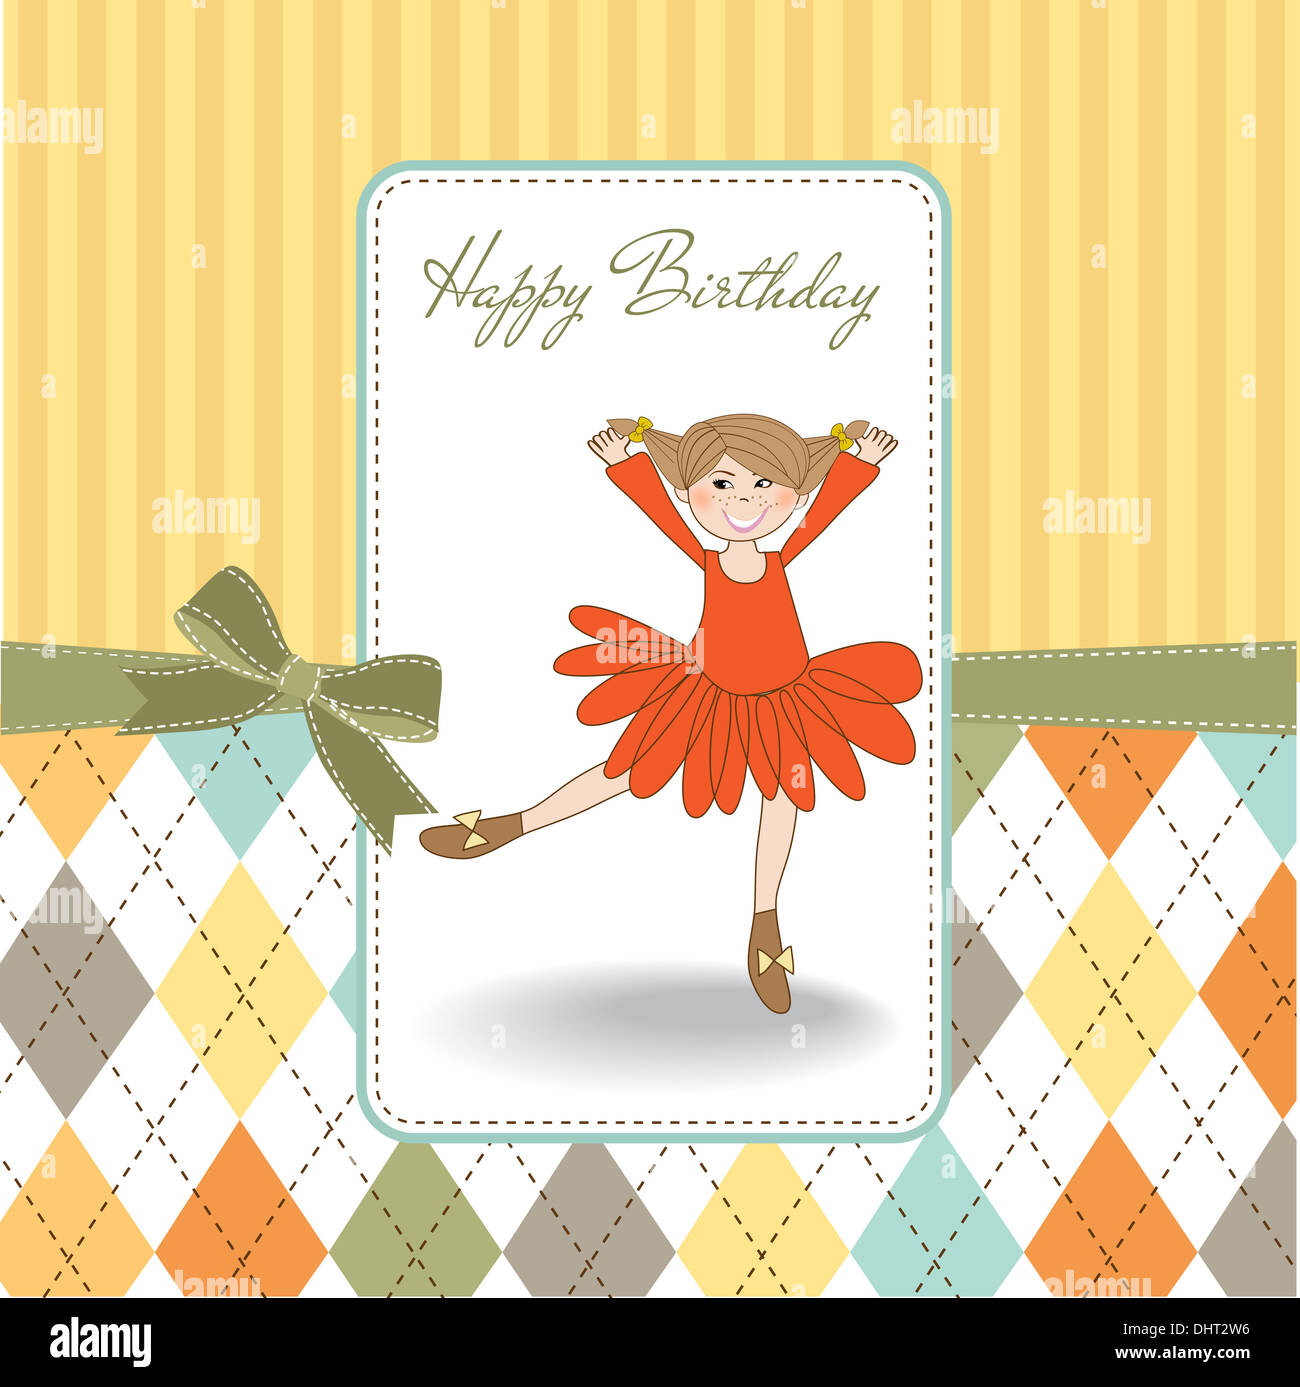 Birthday Greeting Card With Girl Stock Photo 62609378 Alamy